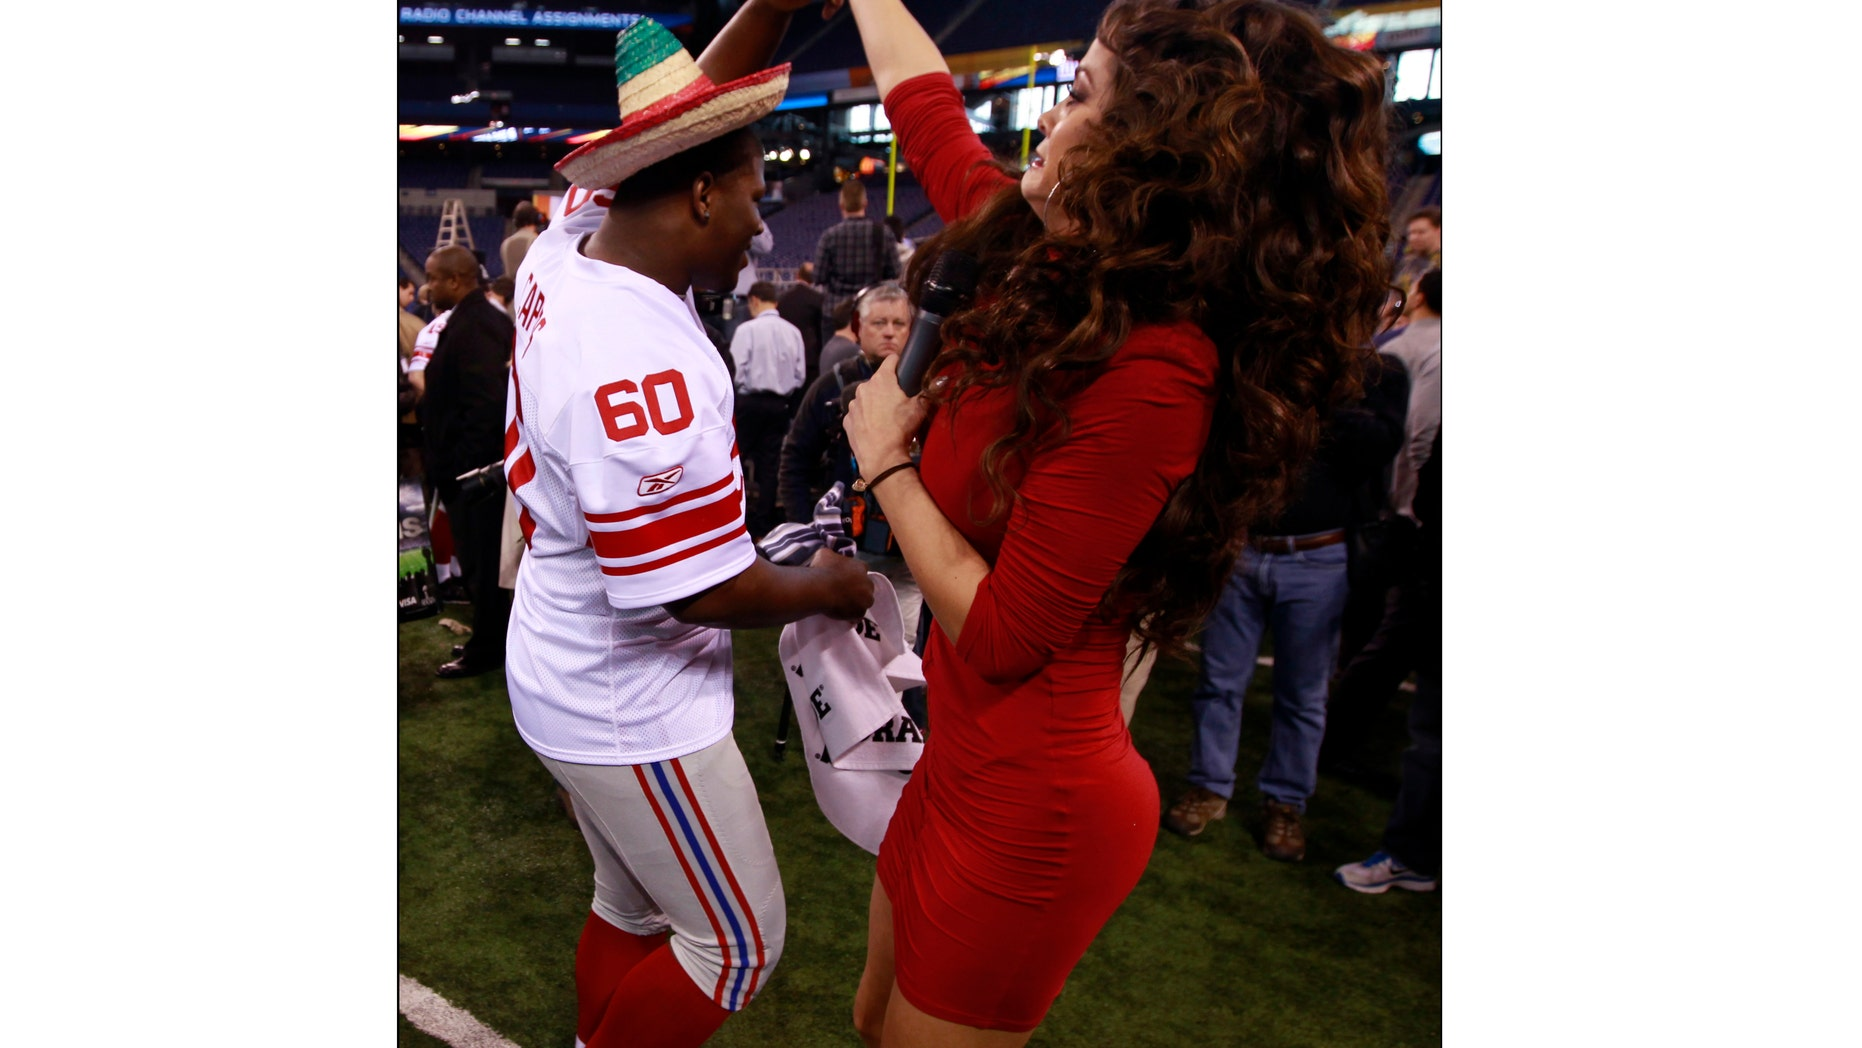 Marisol Gonzalez, Televisa reporter, dances with Selvish Capers of the Giants, Jan. 31, 2012, in Indianapolis.